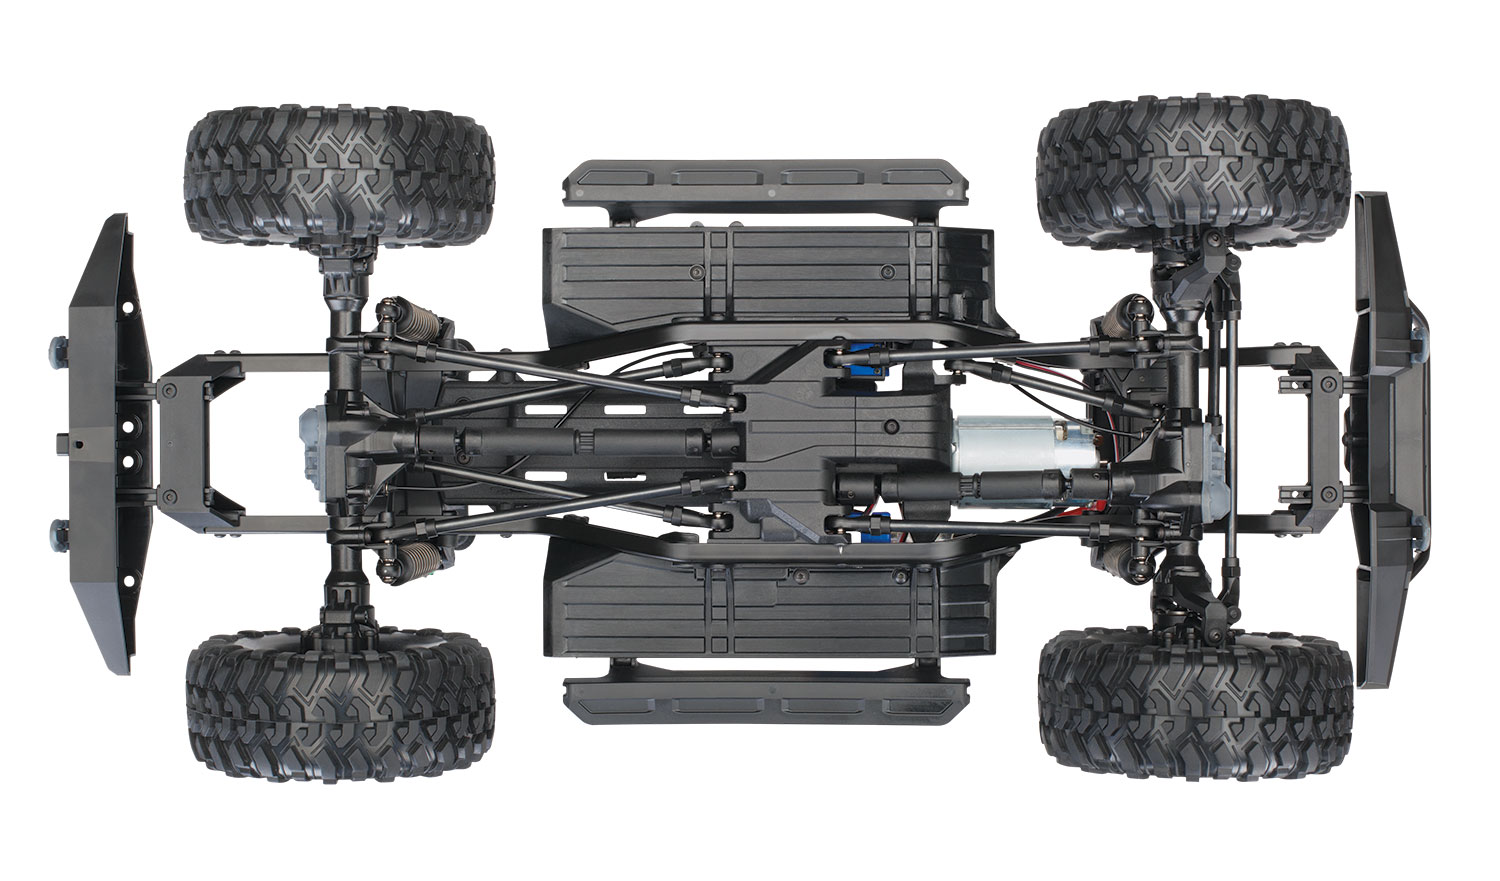 Traxxas TRX-4 1/10 Scale And Trail Crawler - Page 6 82056-4-Defender-Chassis-bottom